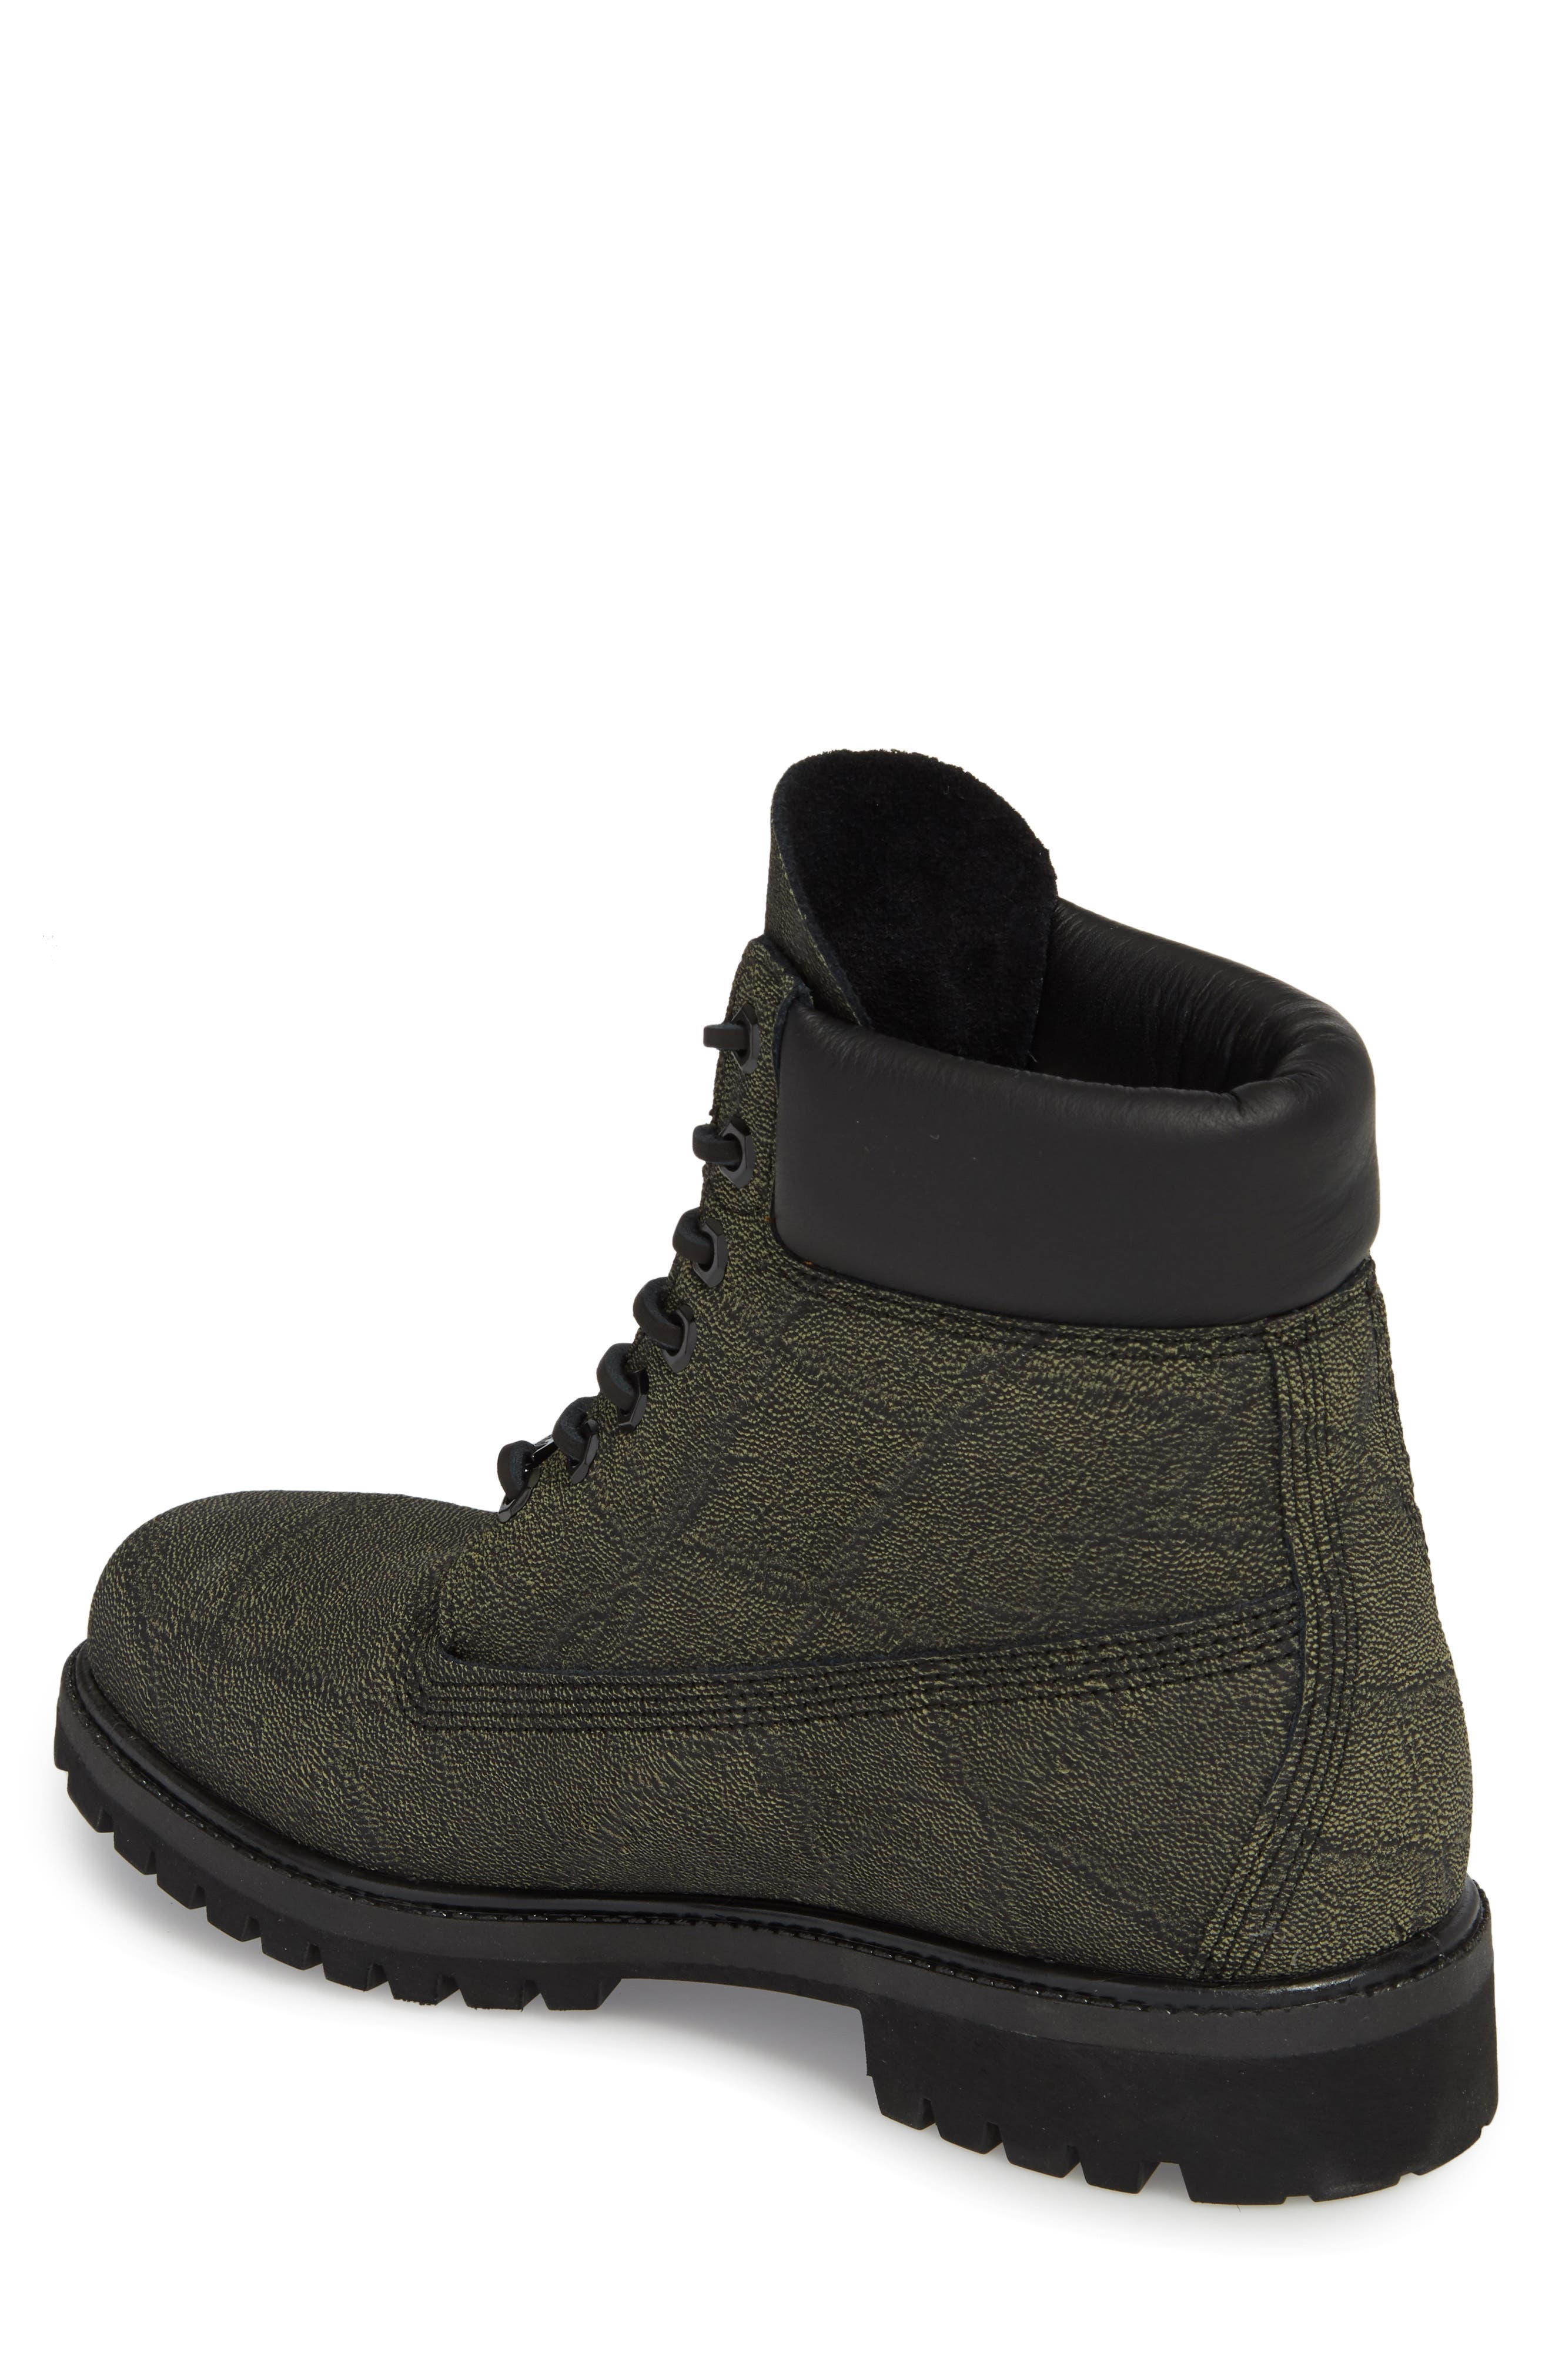 Premium Mammoth Waterproof PrimaLoft<sup>®</sup> Insulated Boot,                             Alternate thumbnail 2, color,                             Black/ Helcor